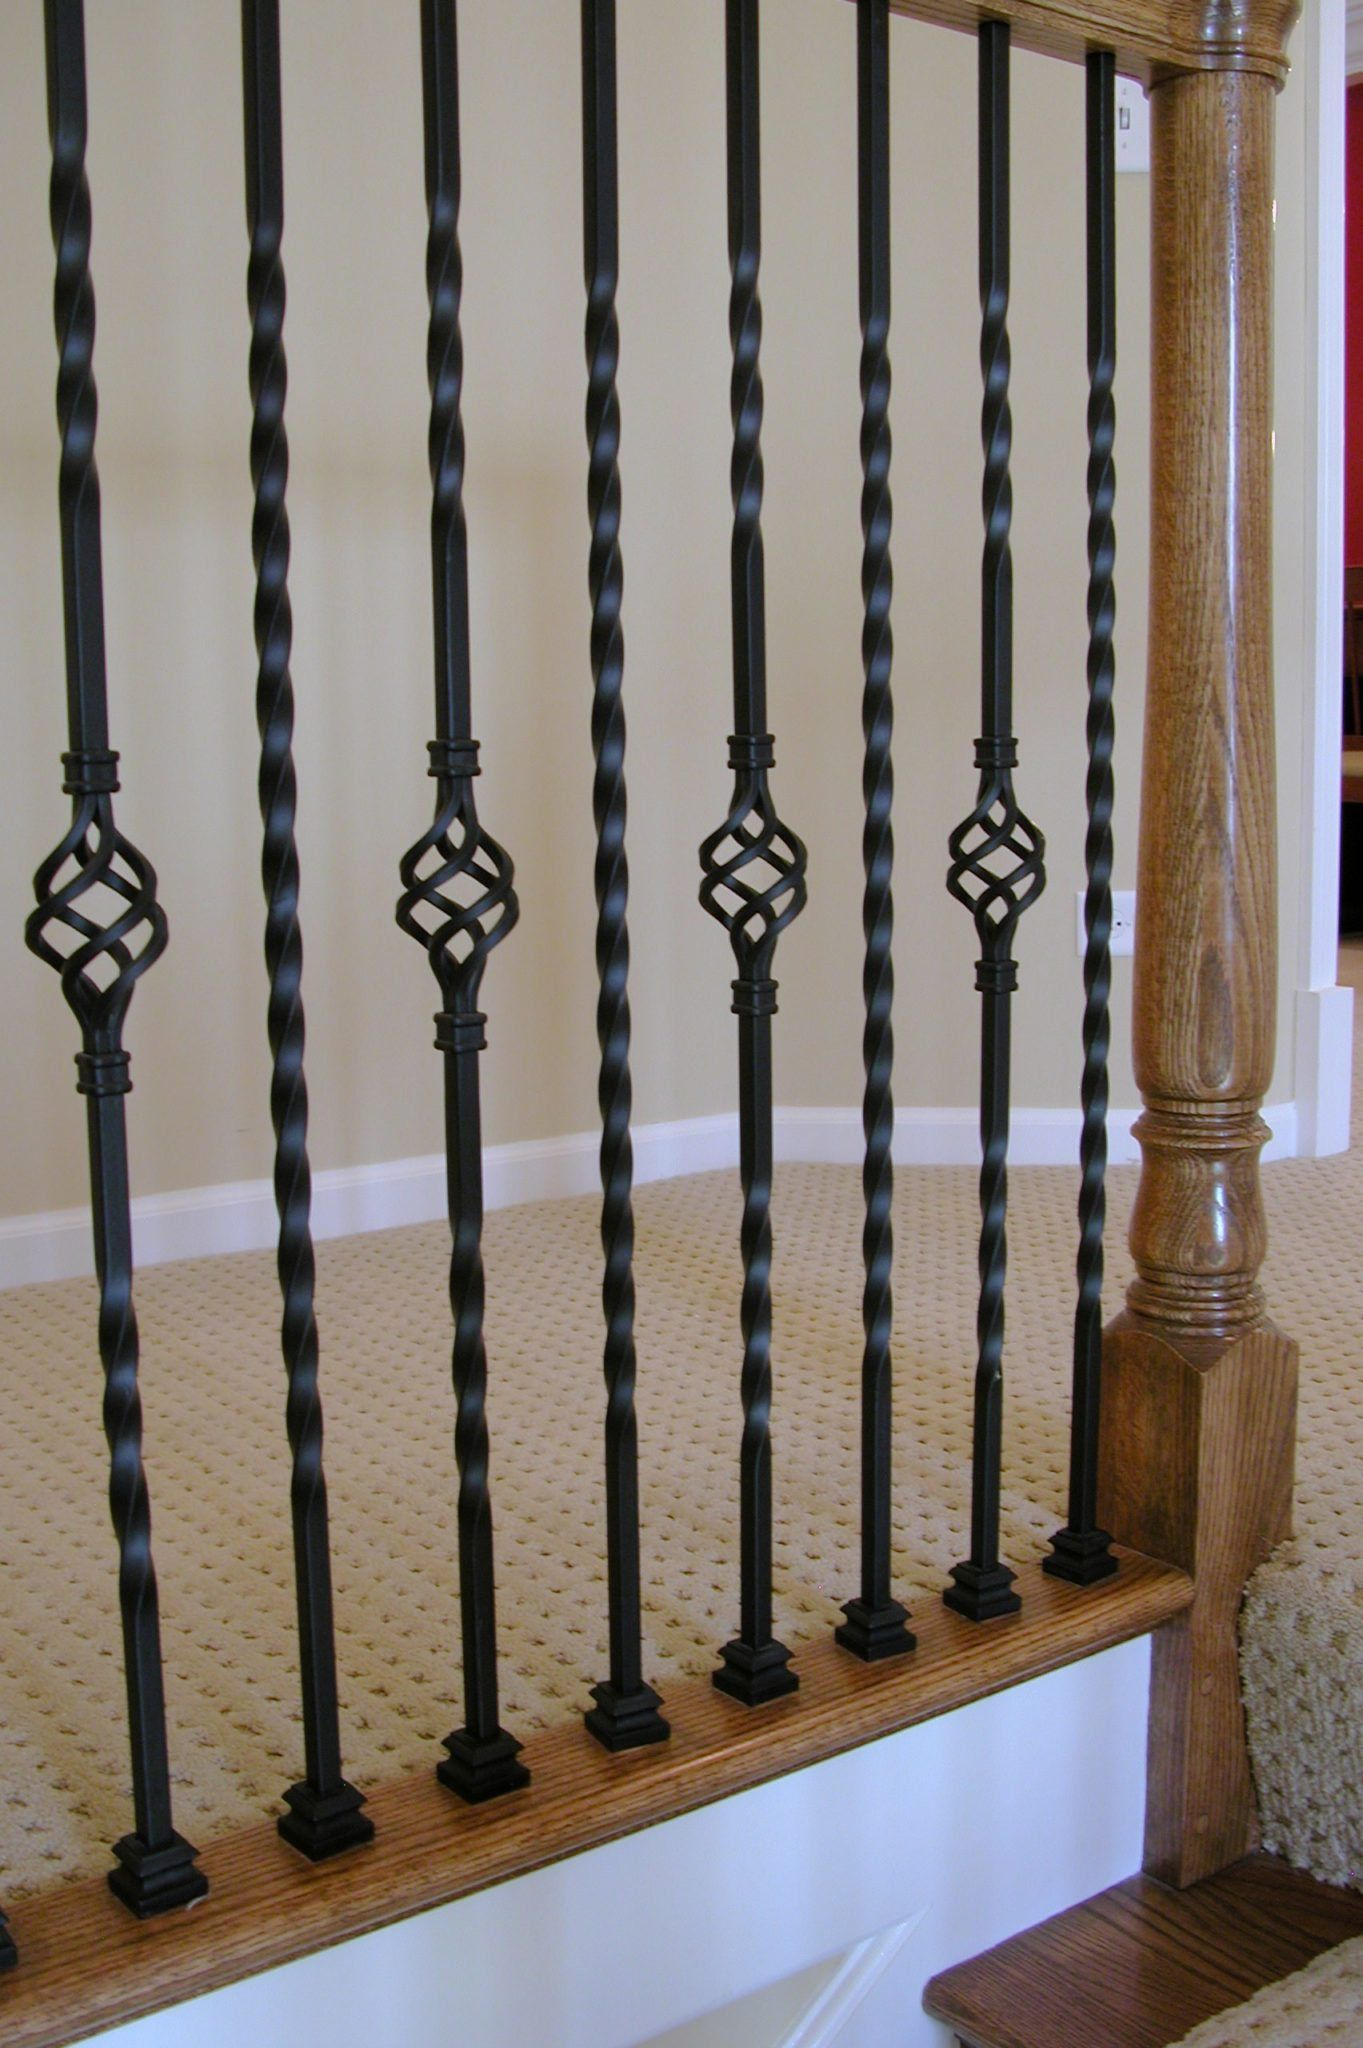 Best 16 1 3 T Hollow Single Basket Iron Baluster Wrought Iron Stair Railing 400 x 300